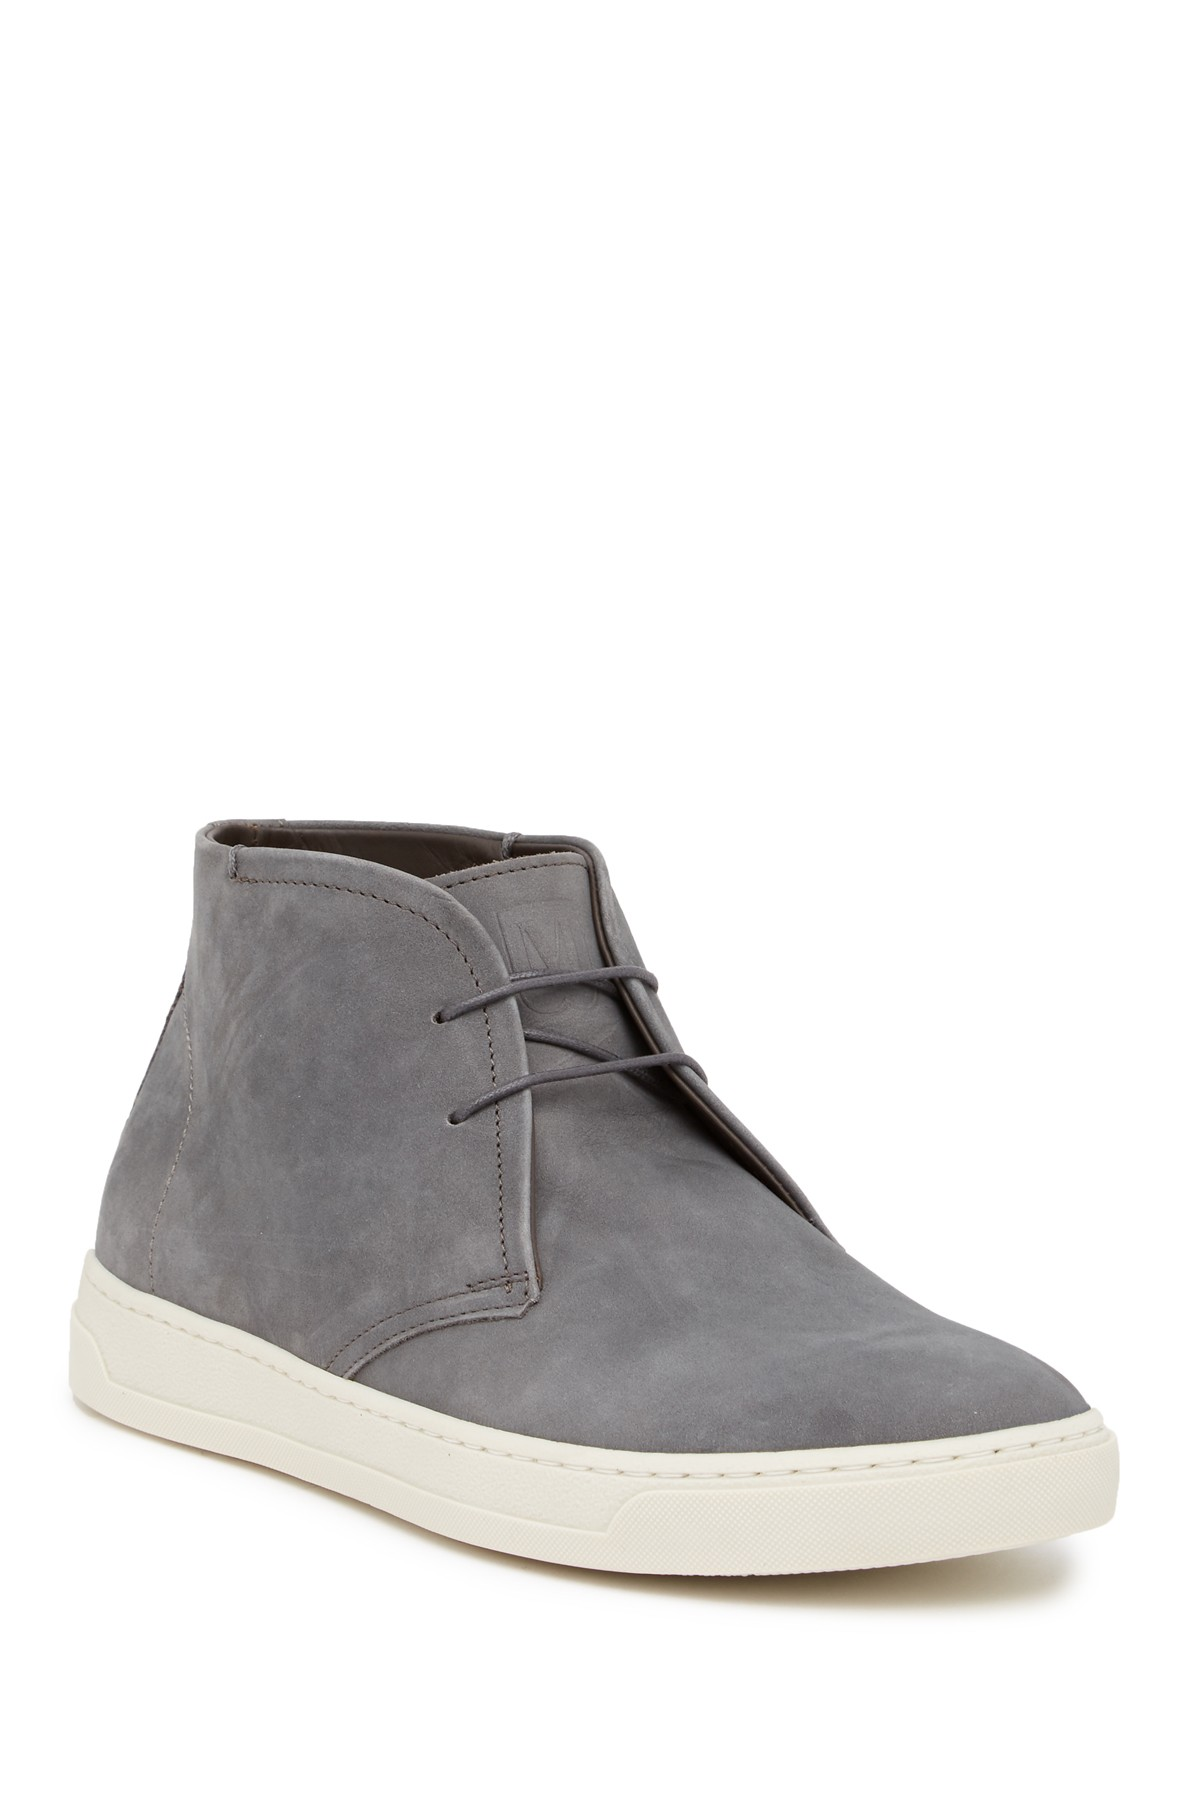 58eefca82 Visto Chukka Sneaker Chukka Sneakers, Leather Sneakers, Bruno Magli, Free  Shipping, Nordstrom